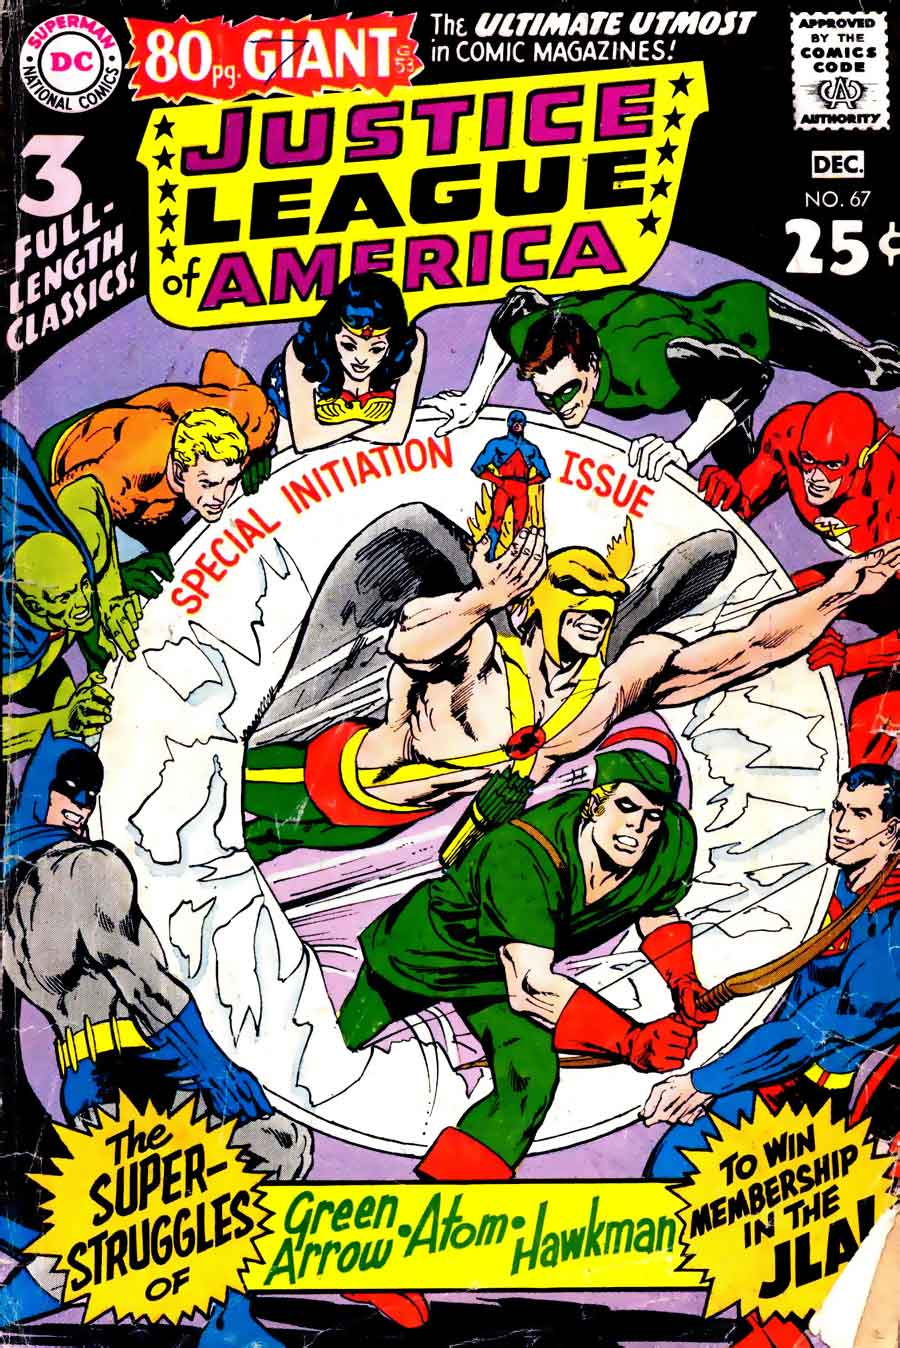 Justice League of America #67 cover by Neal Adams